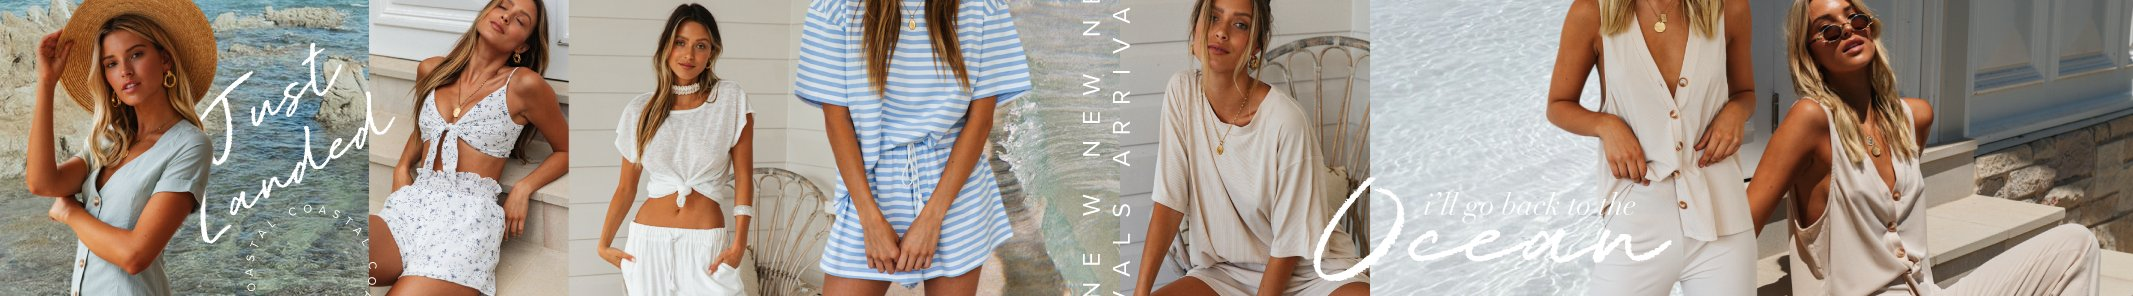 Mura Fashion - New Arrivals